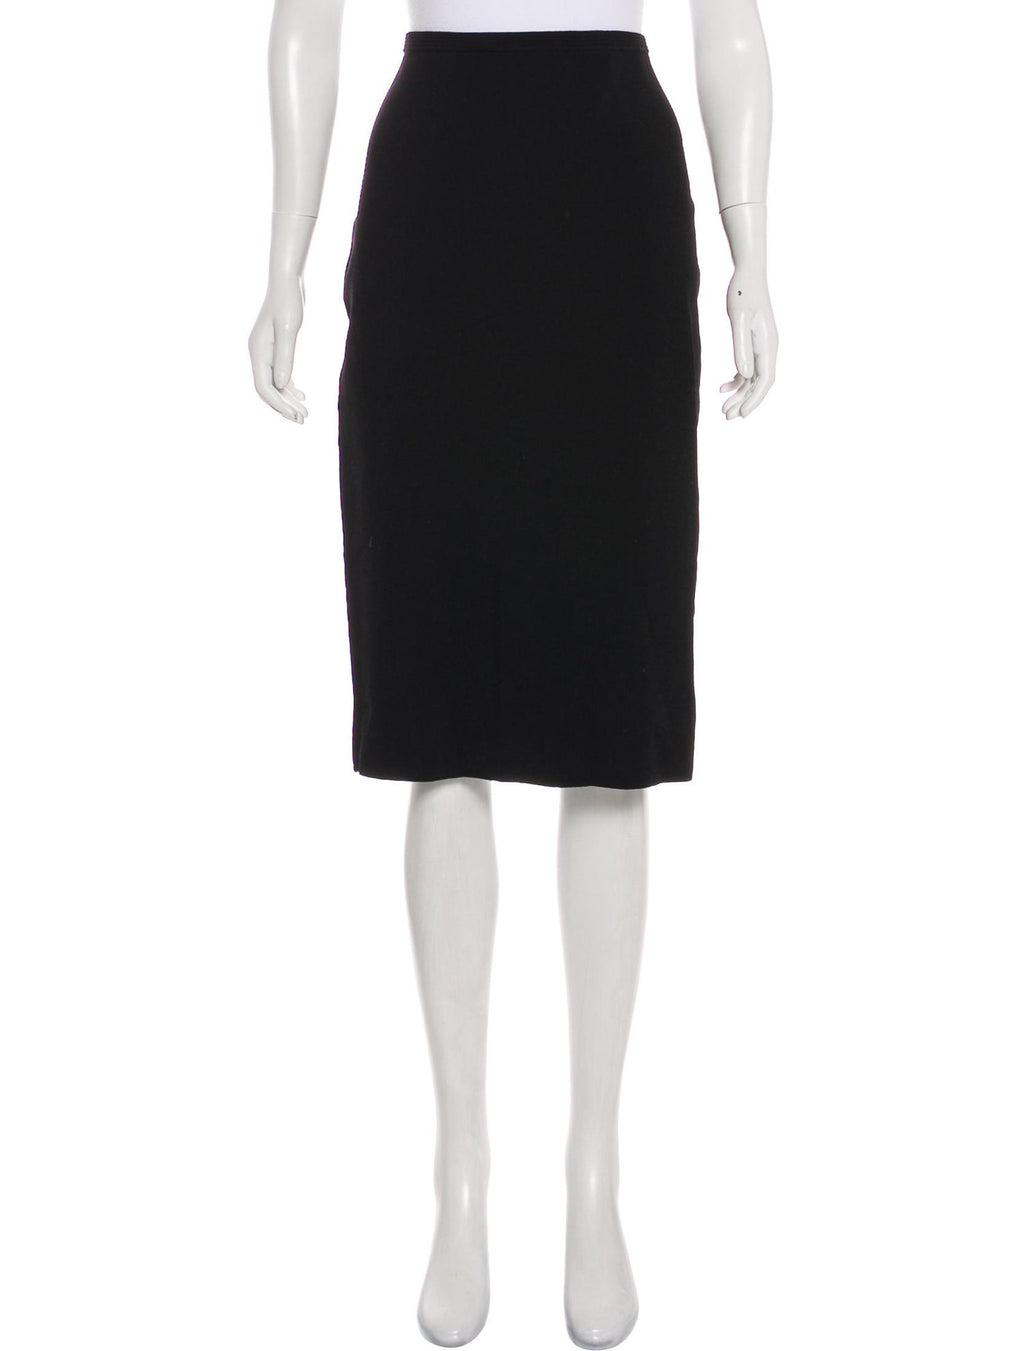 Diane von Furstenburg Knit Pencil Skirt